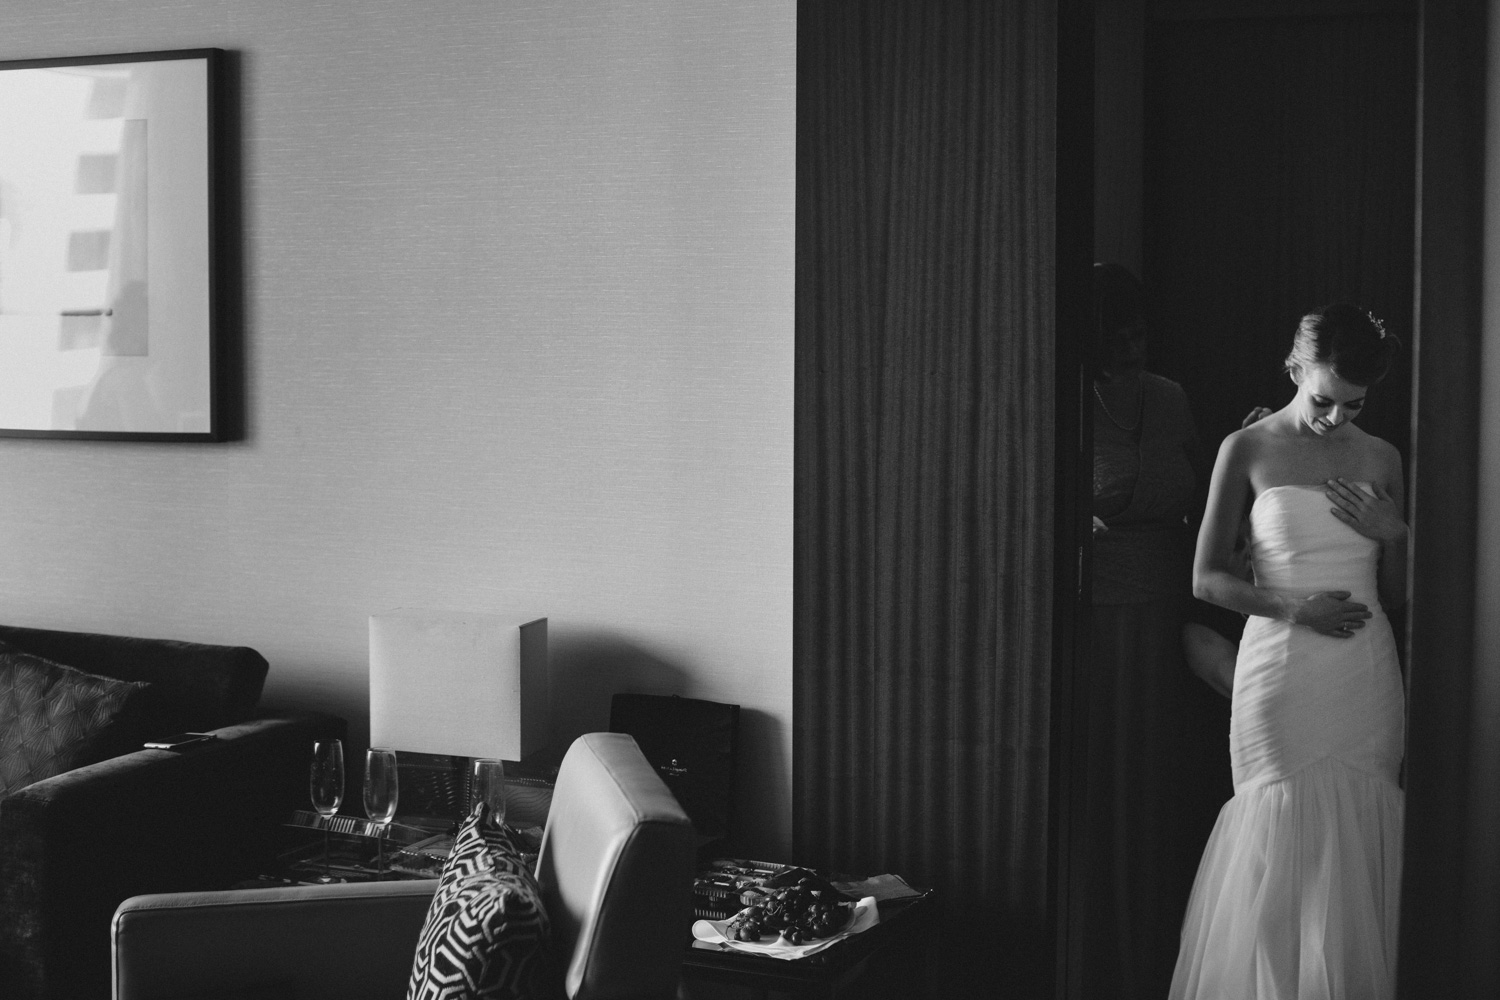 knox-college-toronto-wedding-photos-by-sam-wong-of-artanis-collective_12